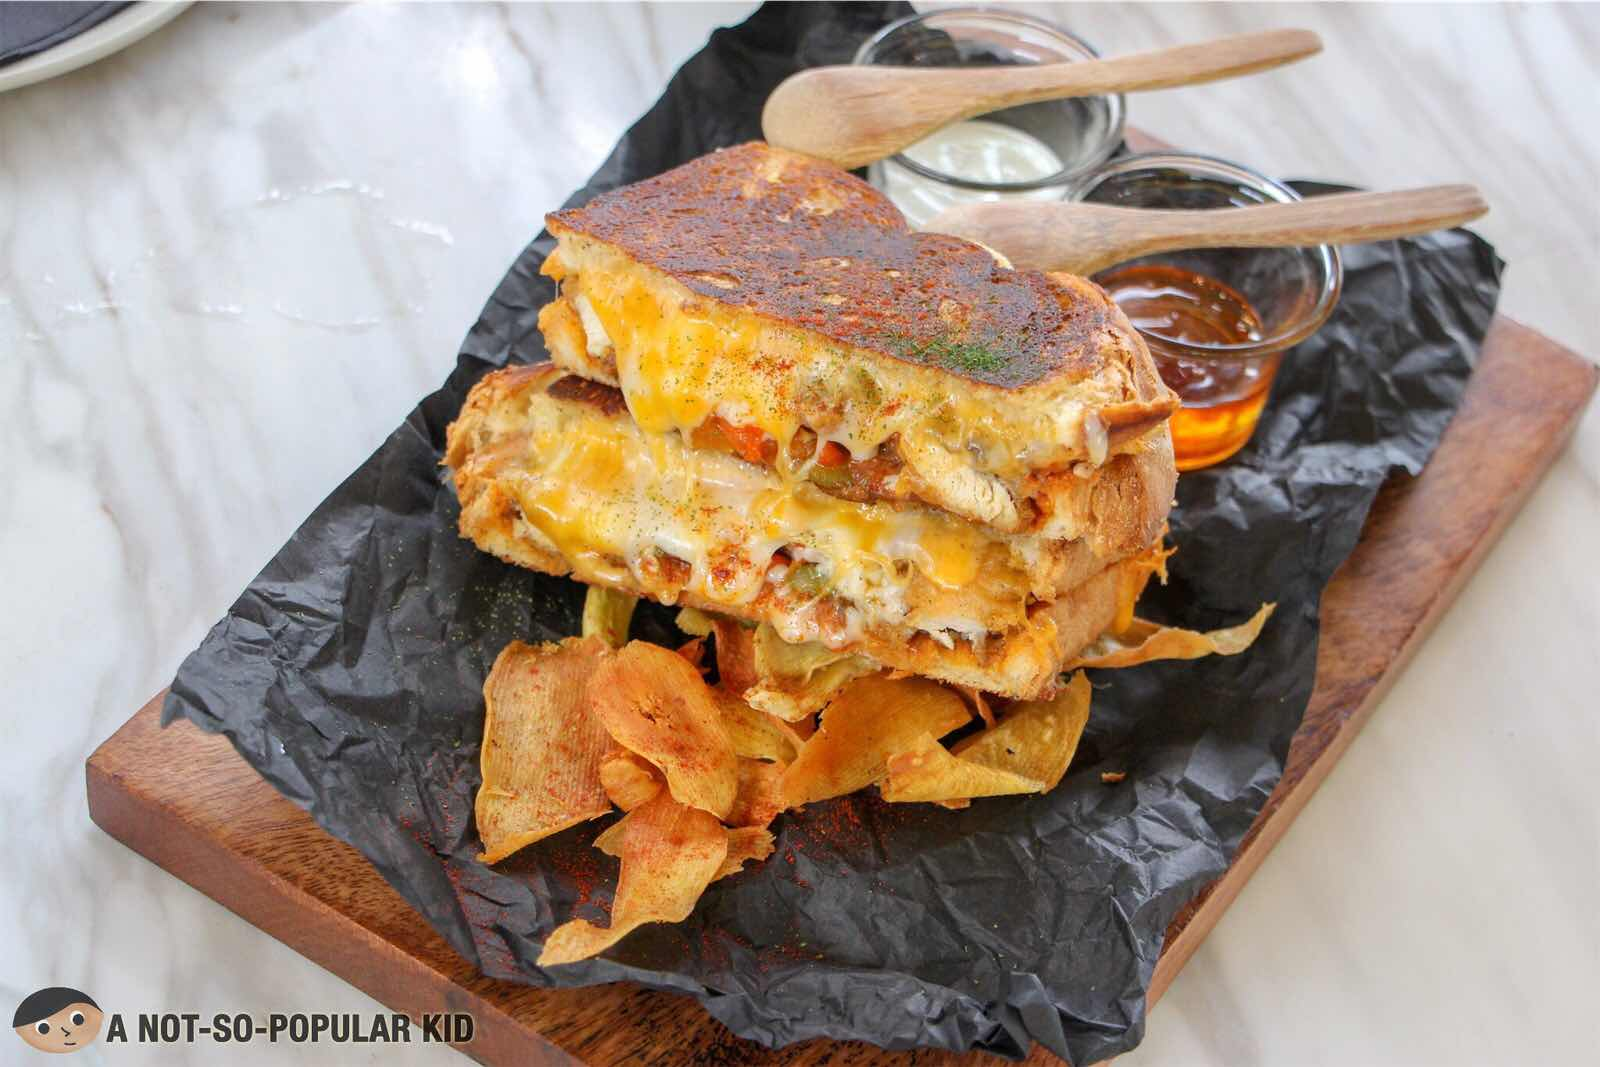 Big Buff of Melt Grilled Cheesery in Molito, Alabang